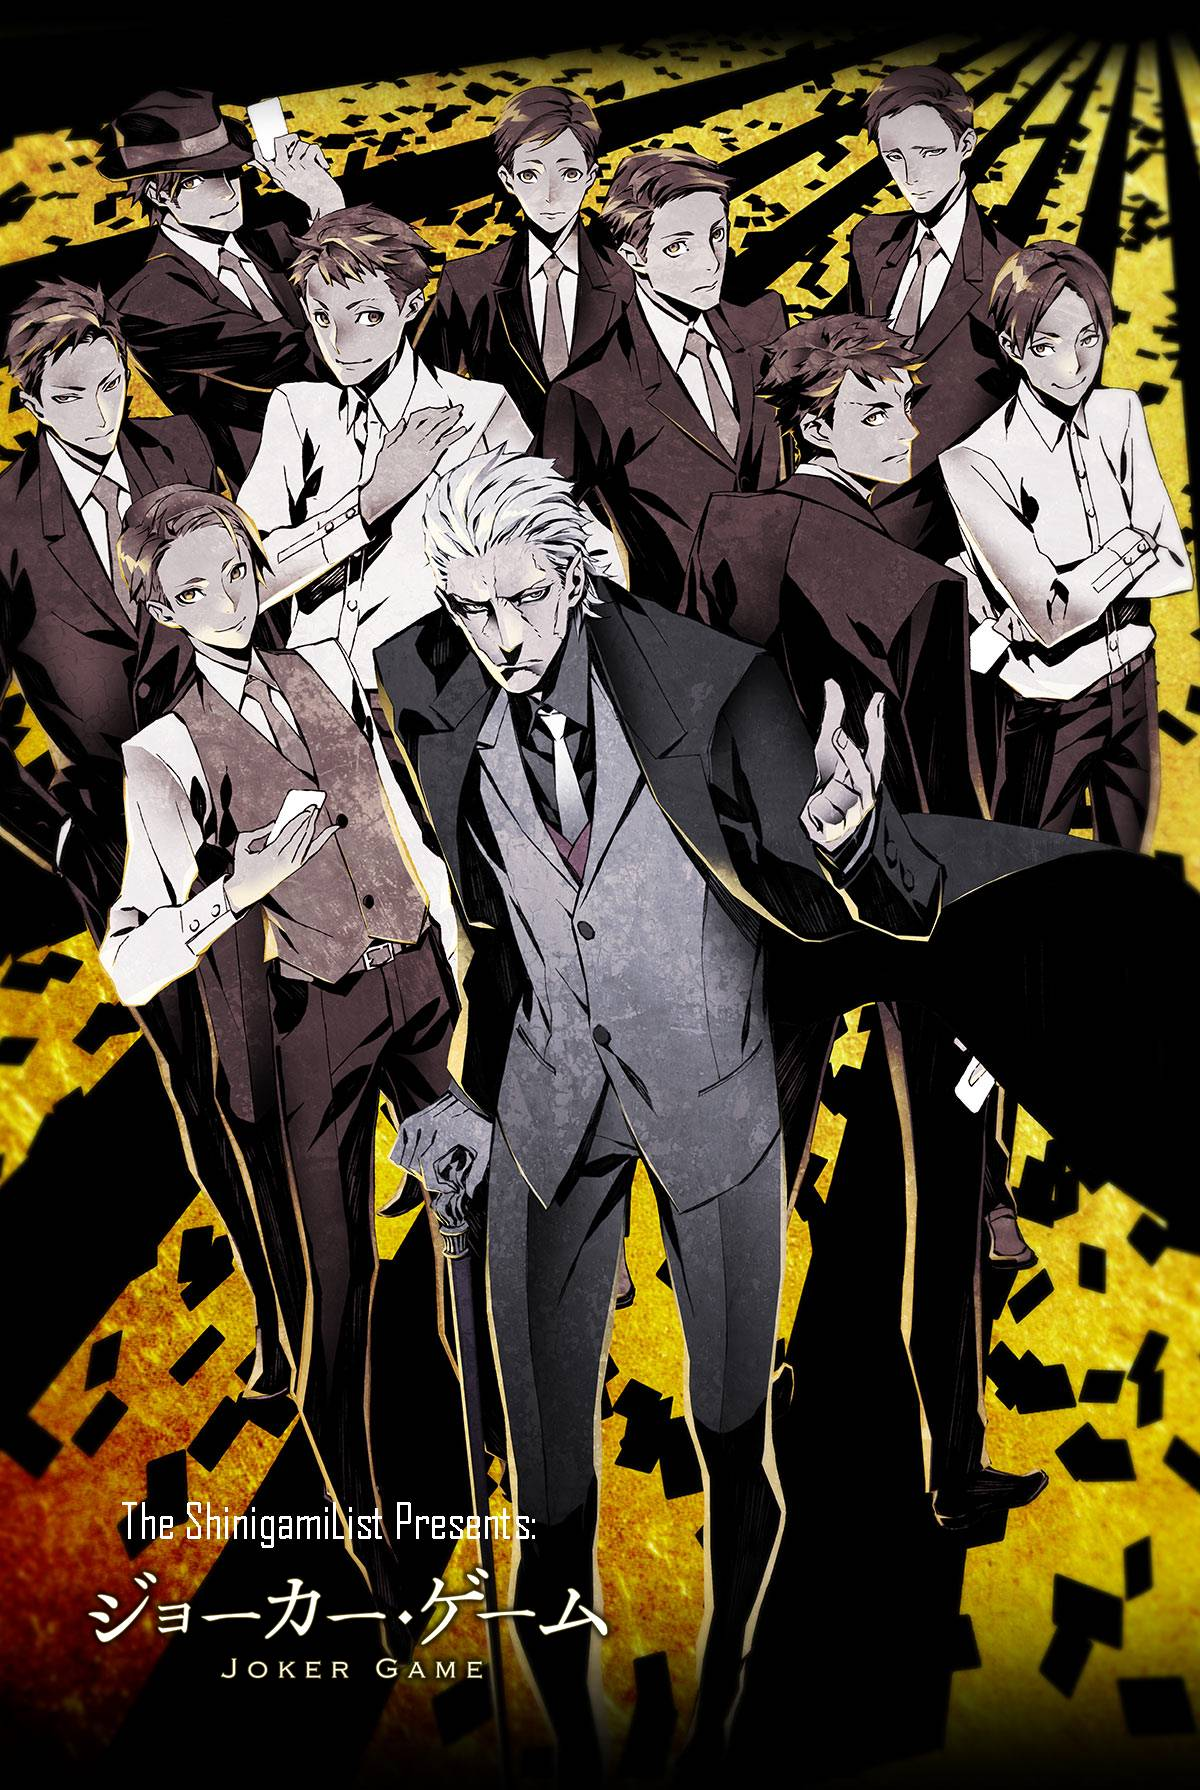 joker-game-anime-1